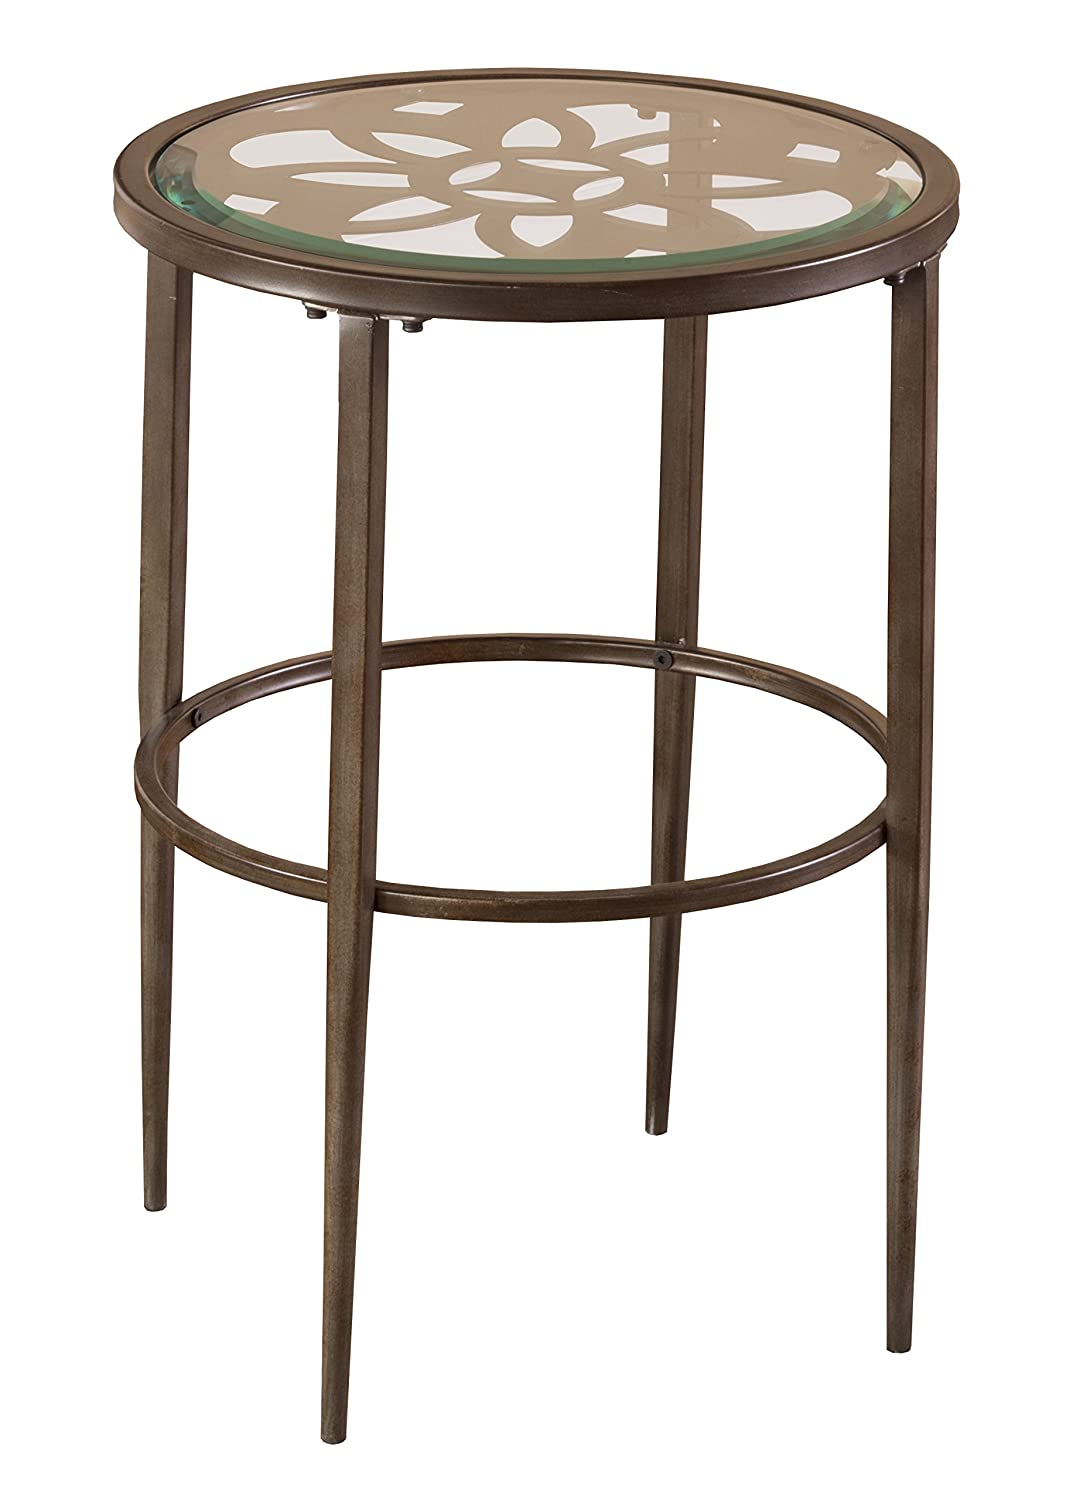 Hillsdale 5497-880 Marsala End Table, 17.25', Gray Finish with Rubbed Brown Accents 17.25